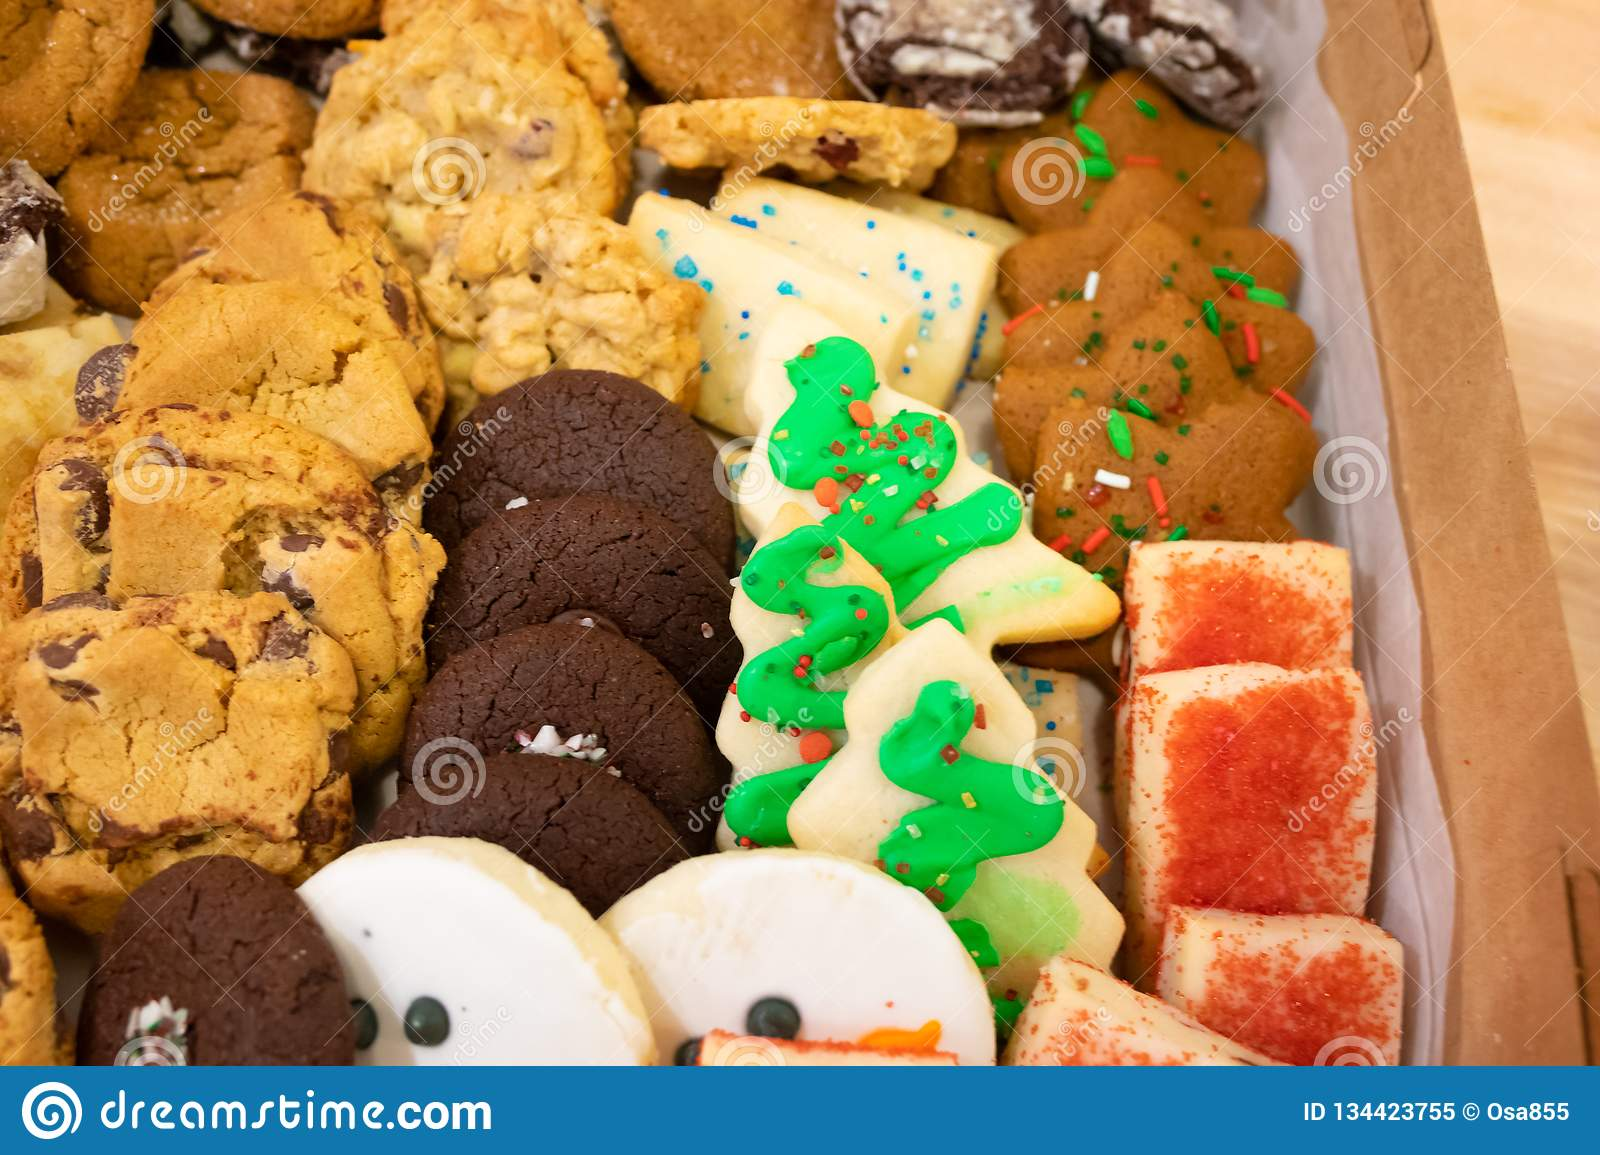 Christmas Cookies Box.Assortment Of Christmas Cookies In A Box Stock Image Image